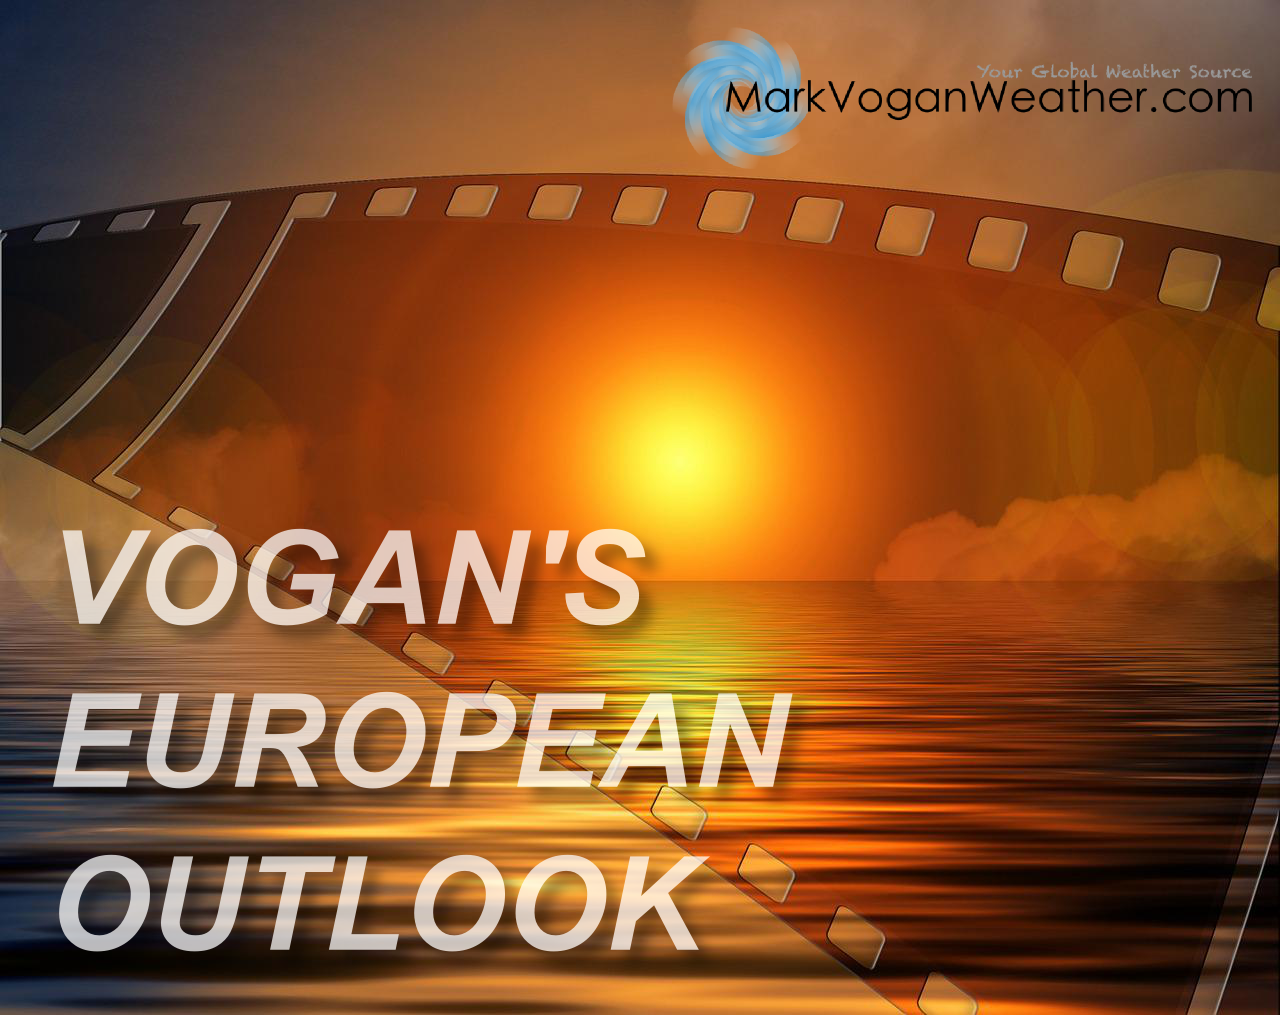 TUE 30 SEP: VOGAN'S EUROPEAN OUTLOOK